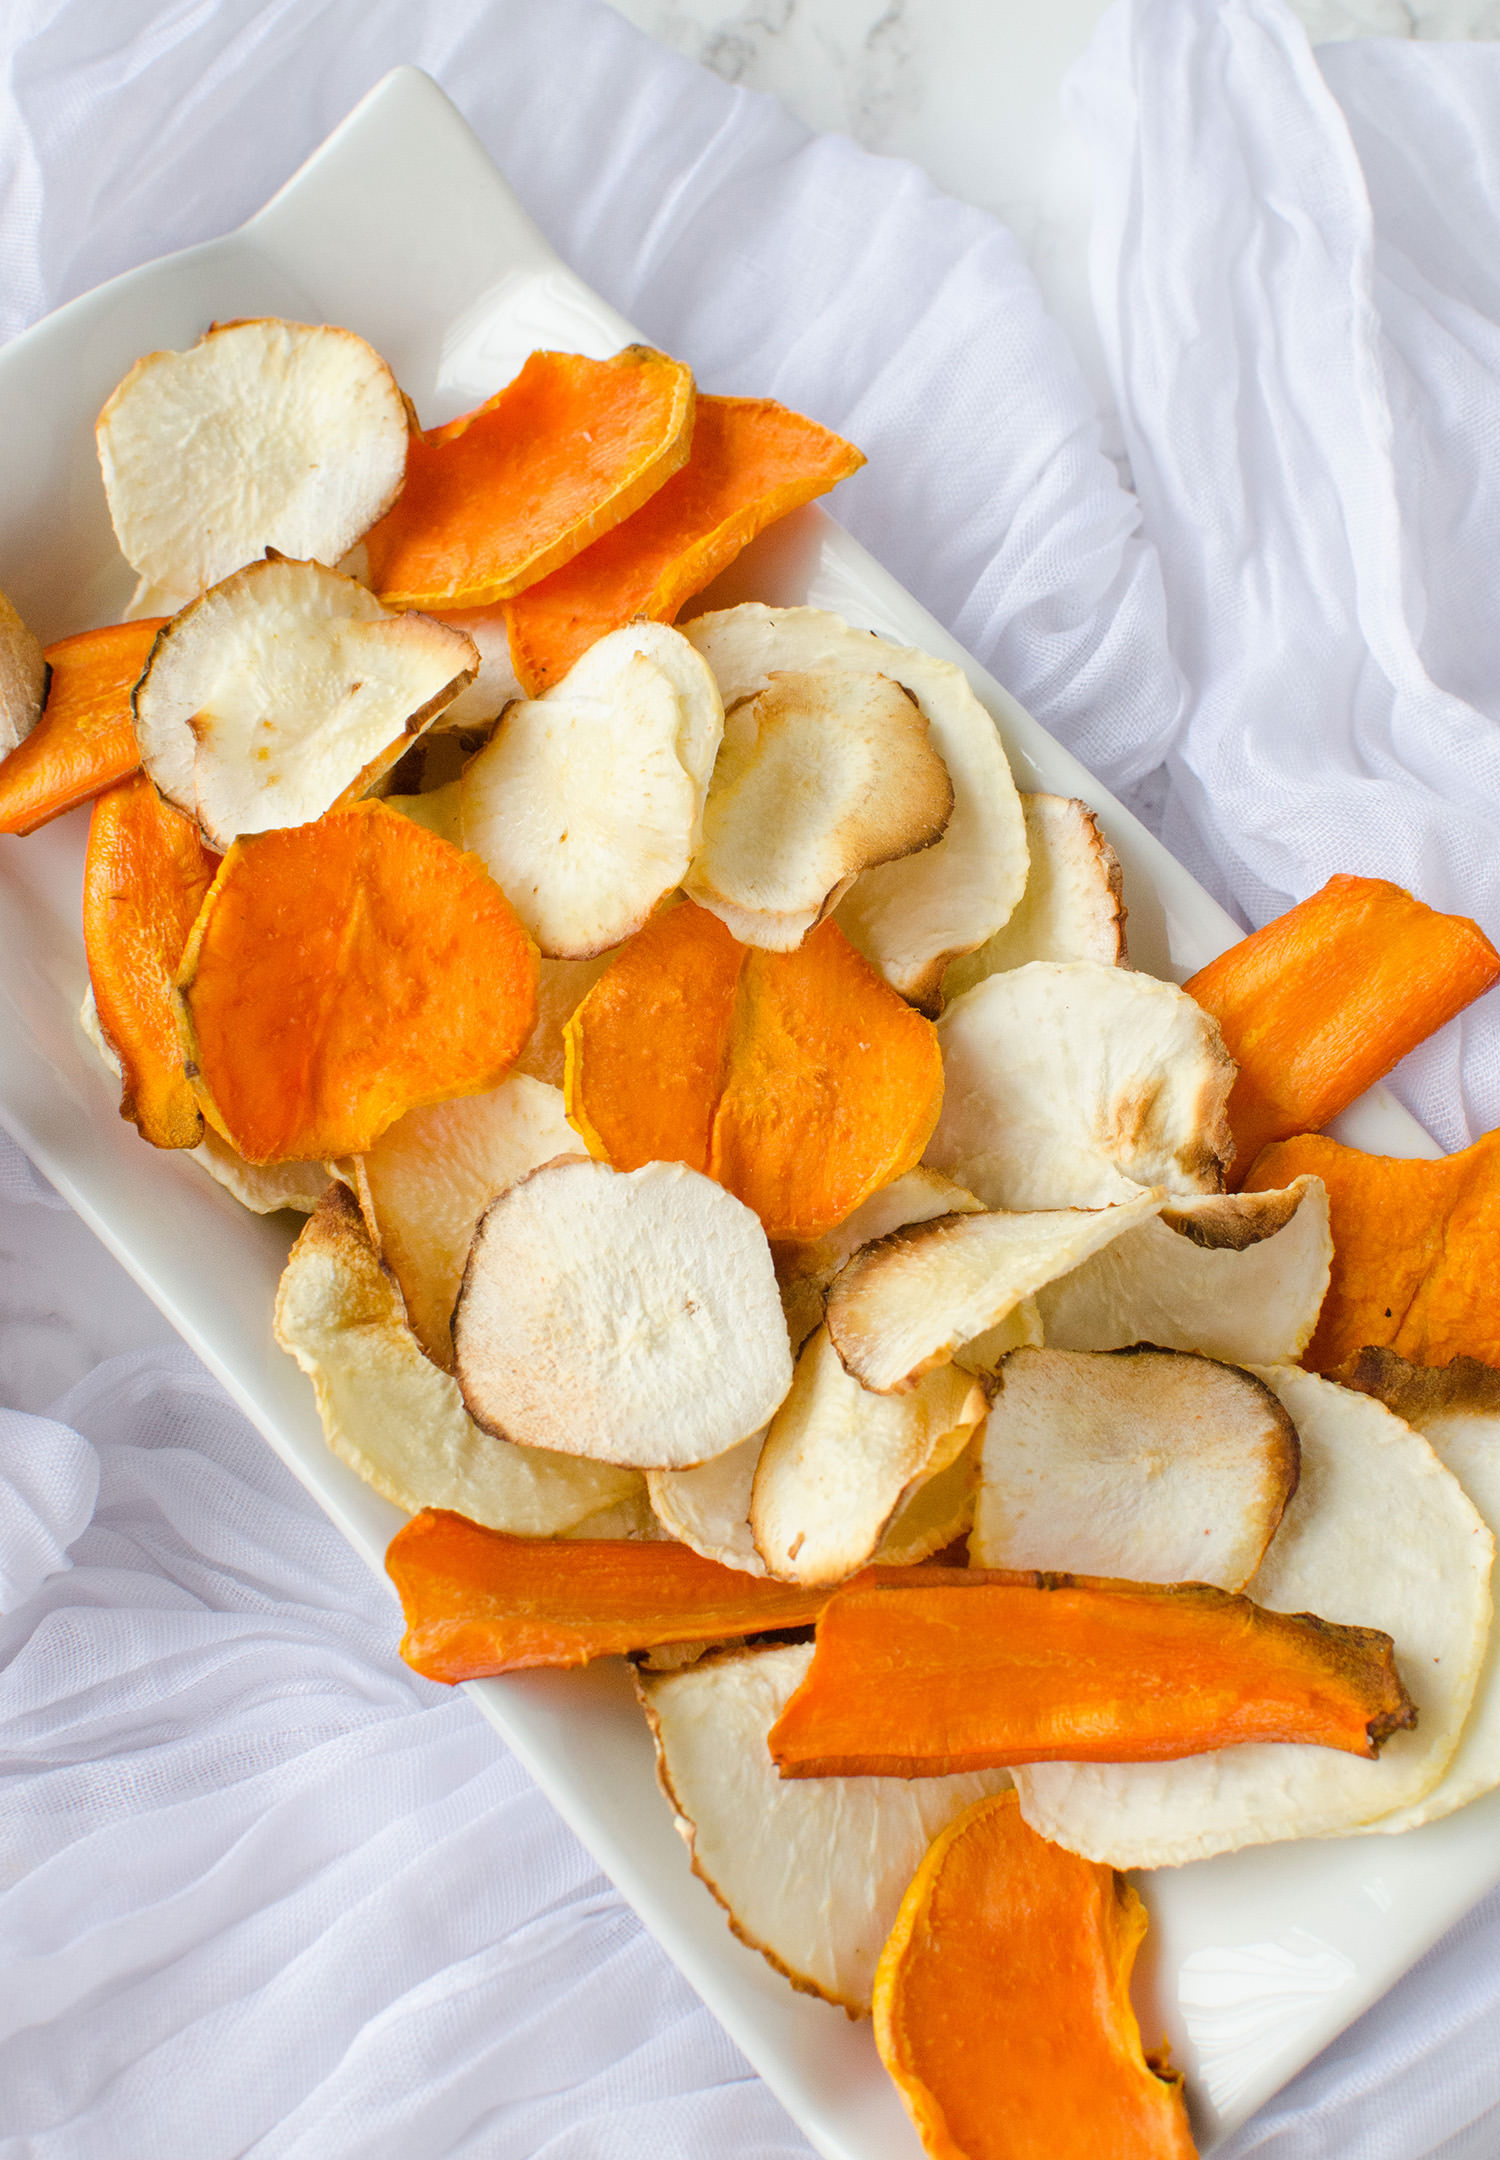 Looking for healthy family recipes? These homemade veggie chips are SUPER easy to make and taste delicious (bonus they're toddler meal friendly)!